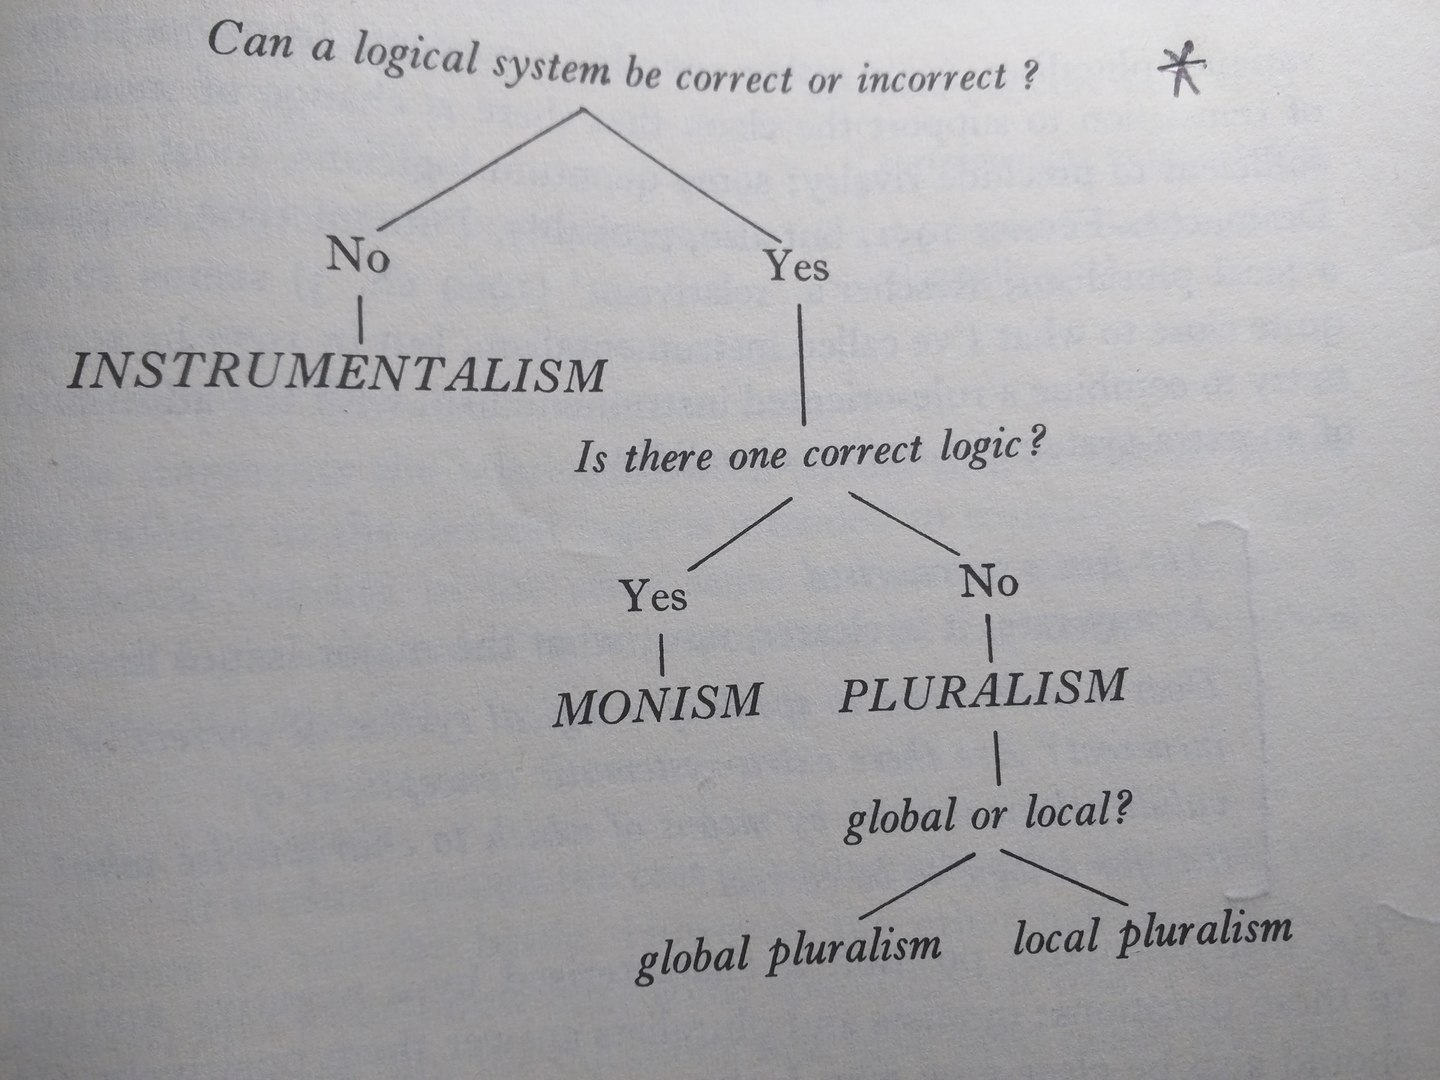 Monism, Pluralism, and Instrumentalism in Logic - The ...